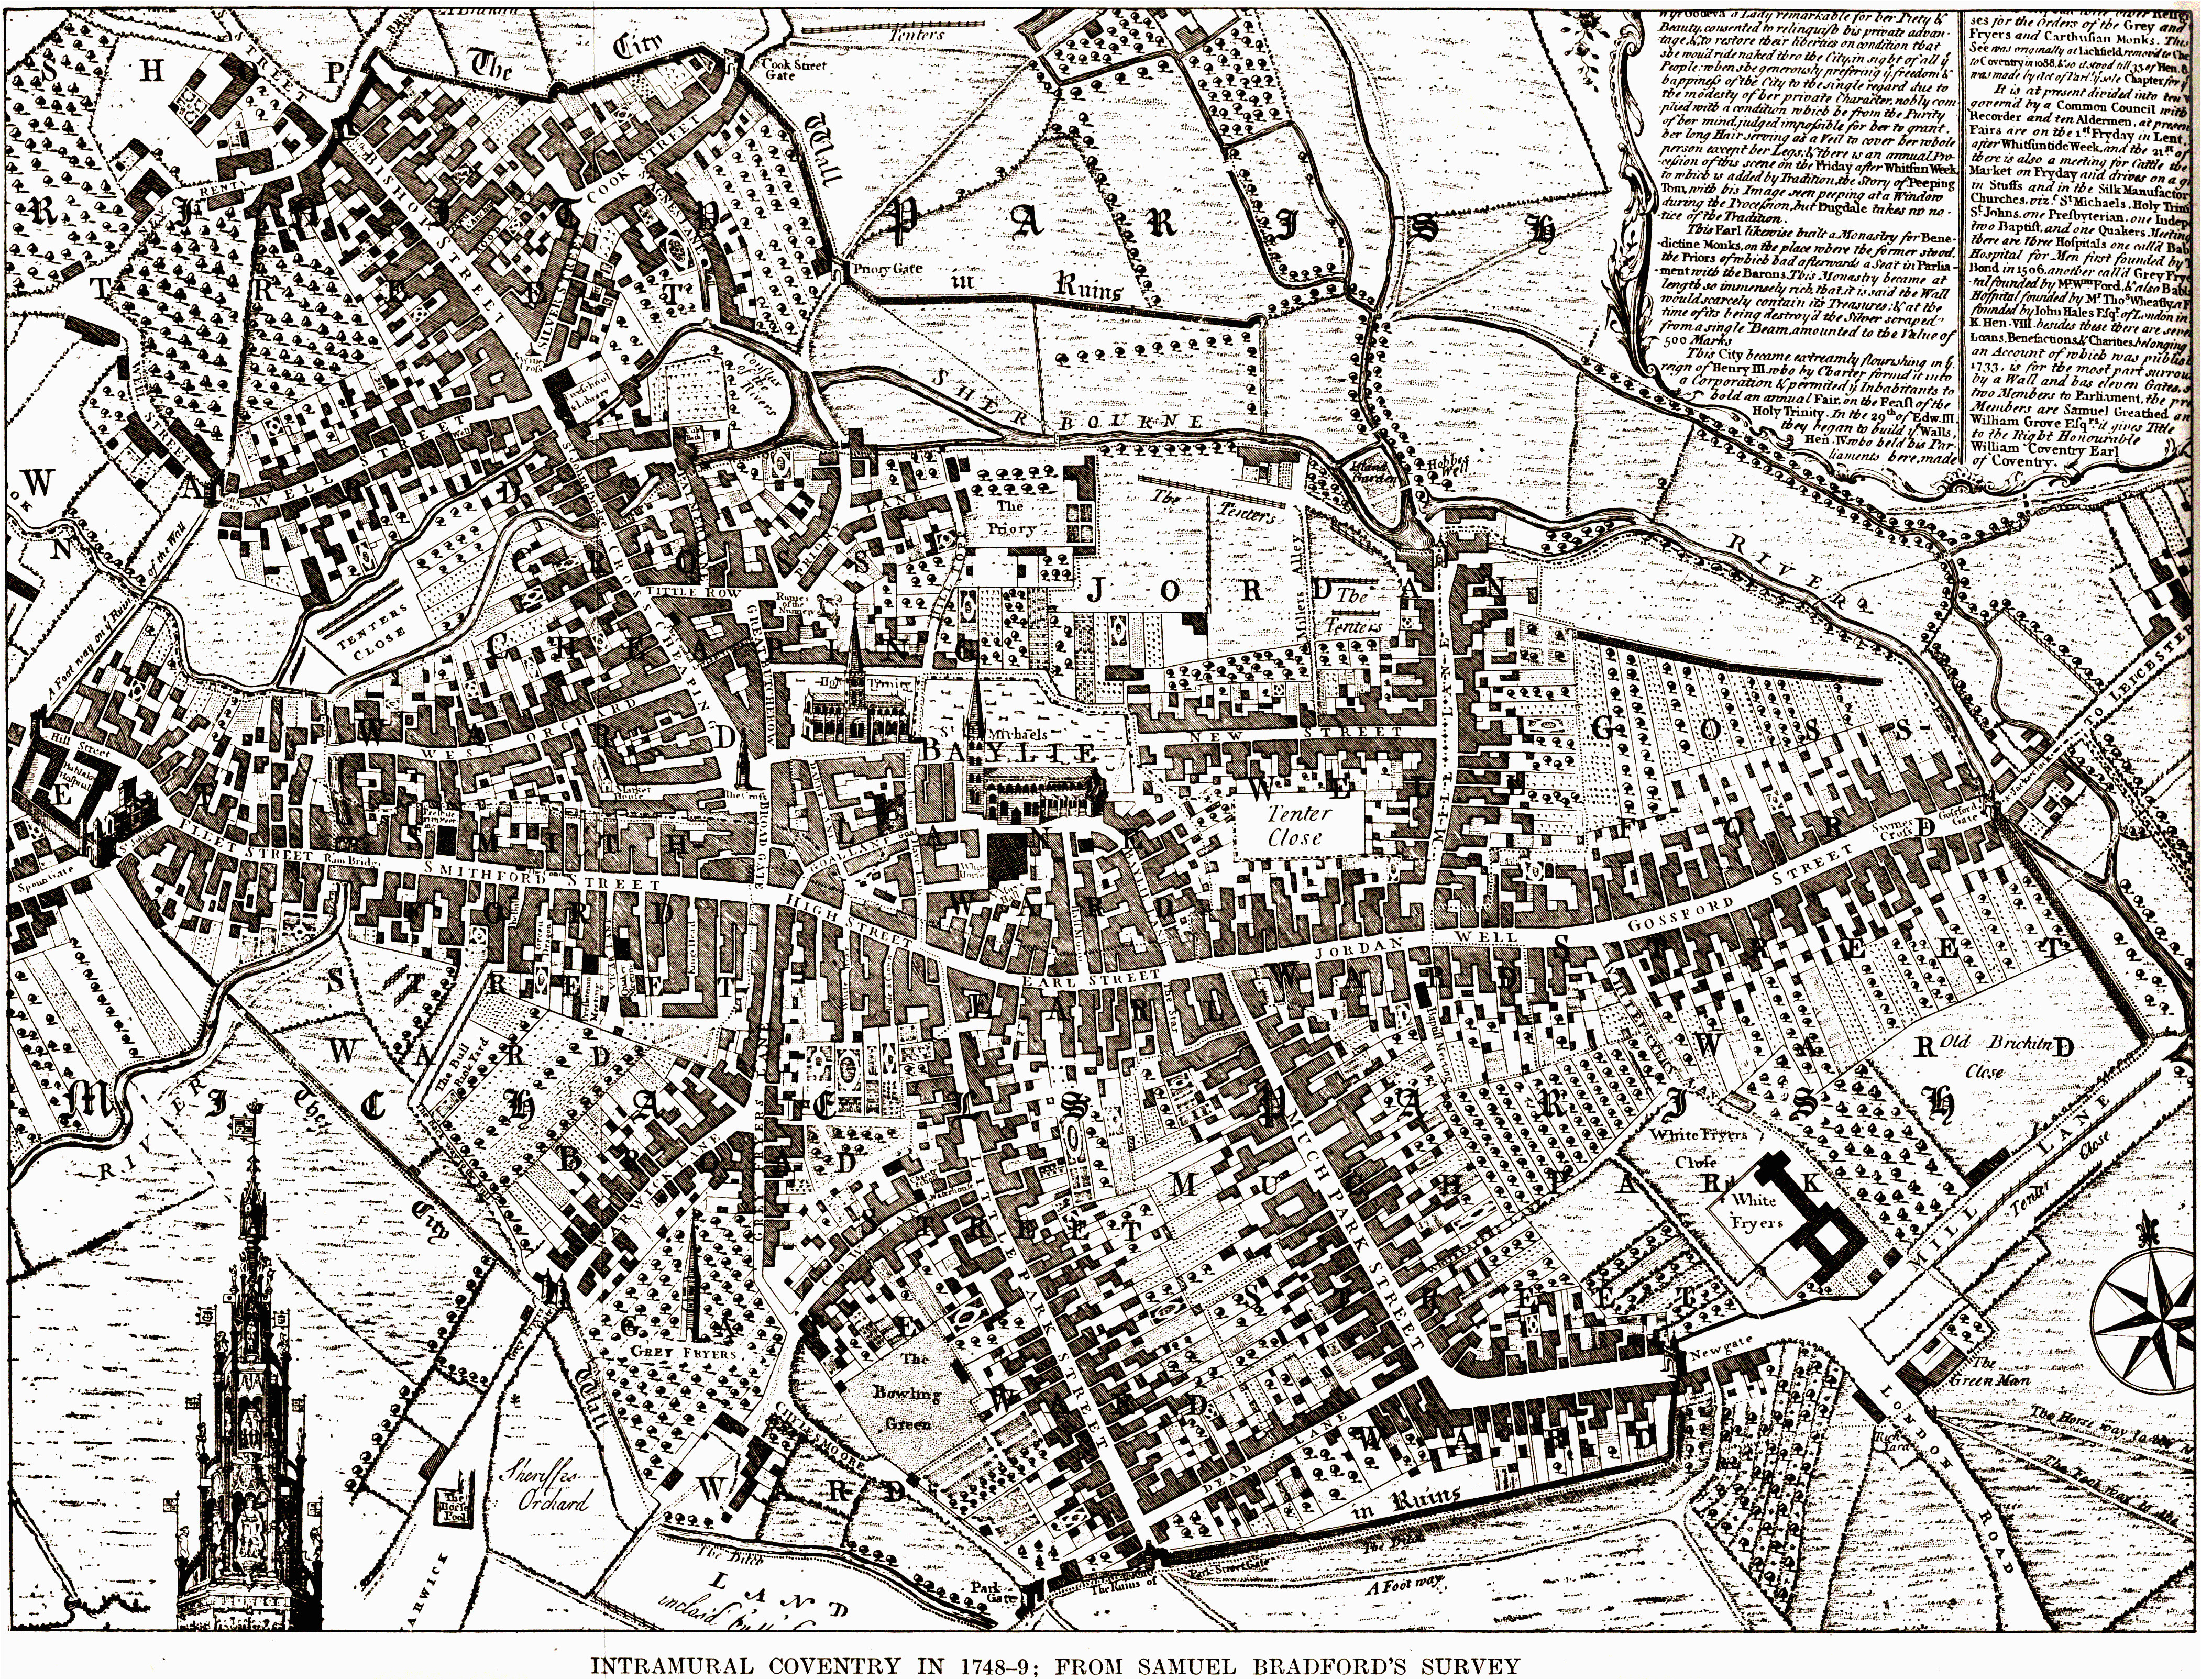 coventry is still medieval in 1749 without any industrial